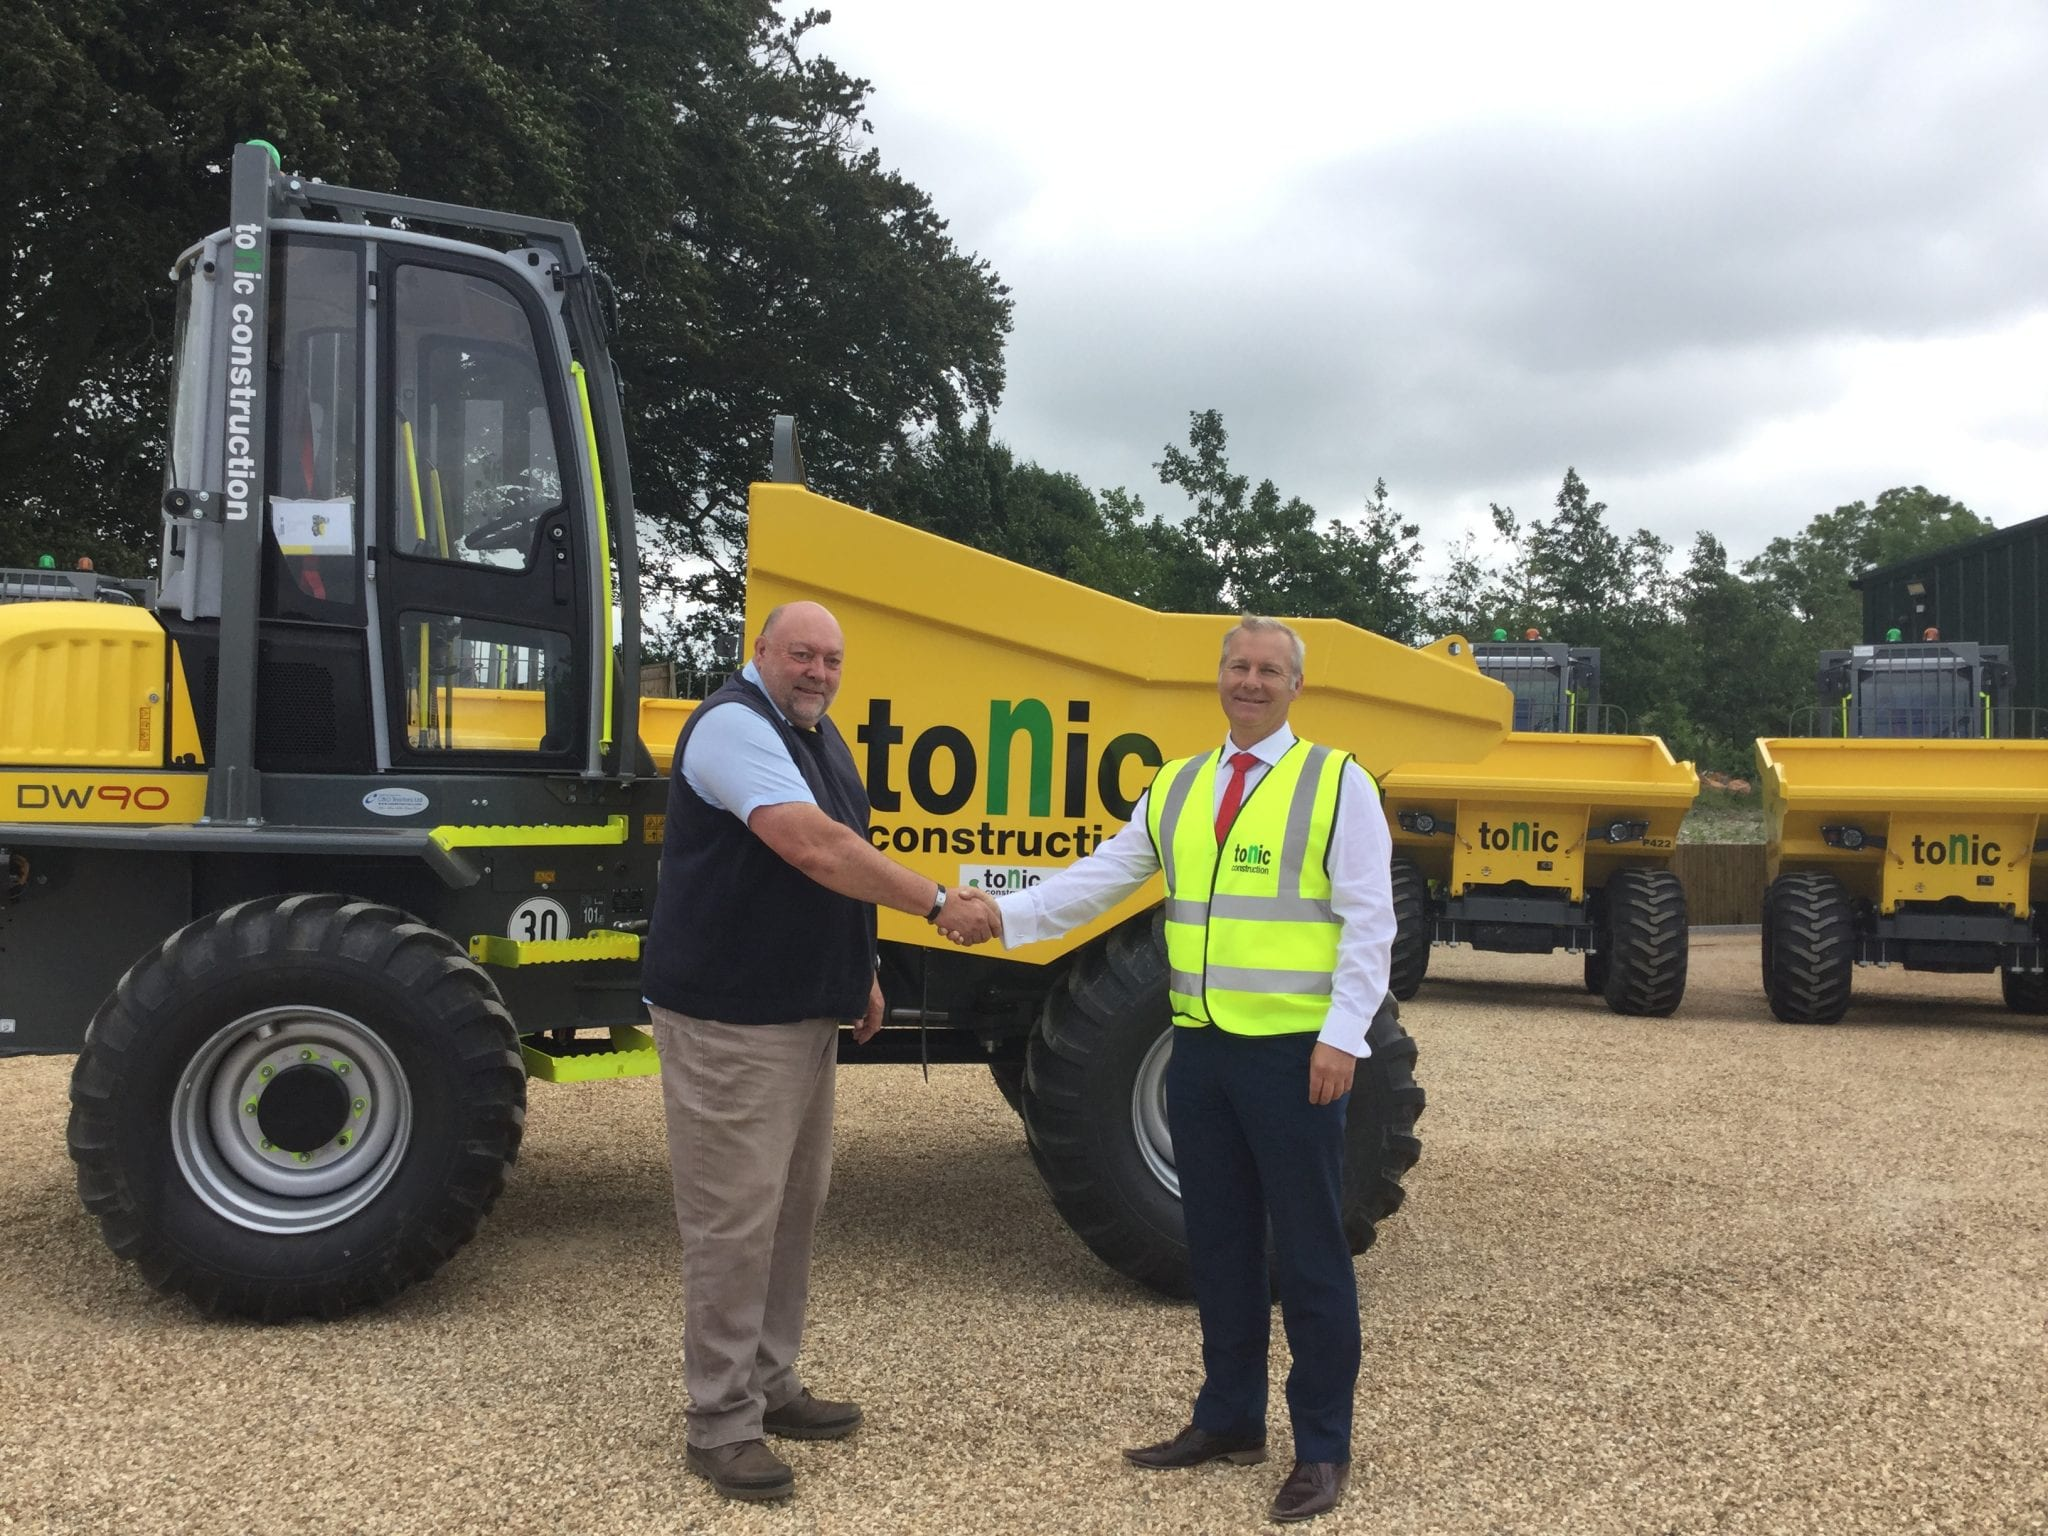 C&O Construction supply the safest dumpers in the UK